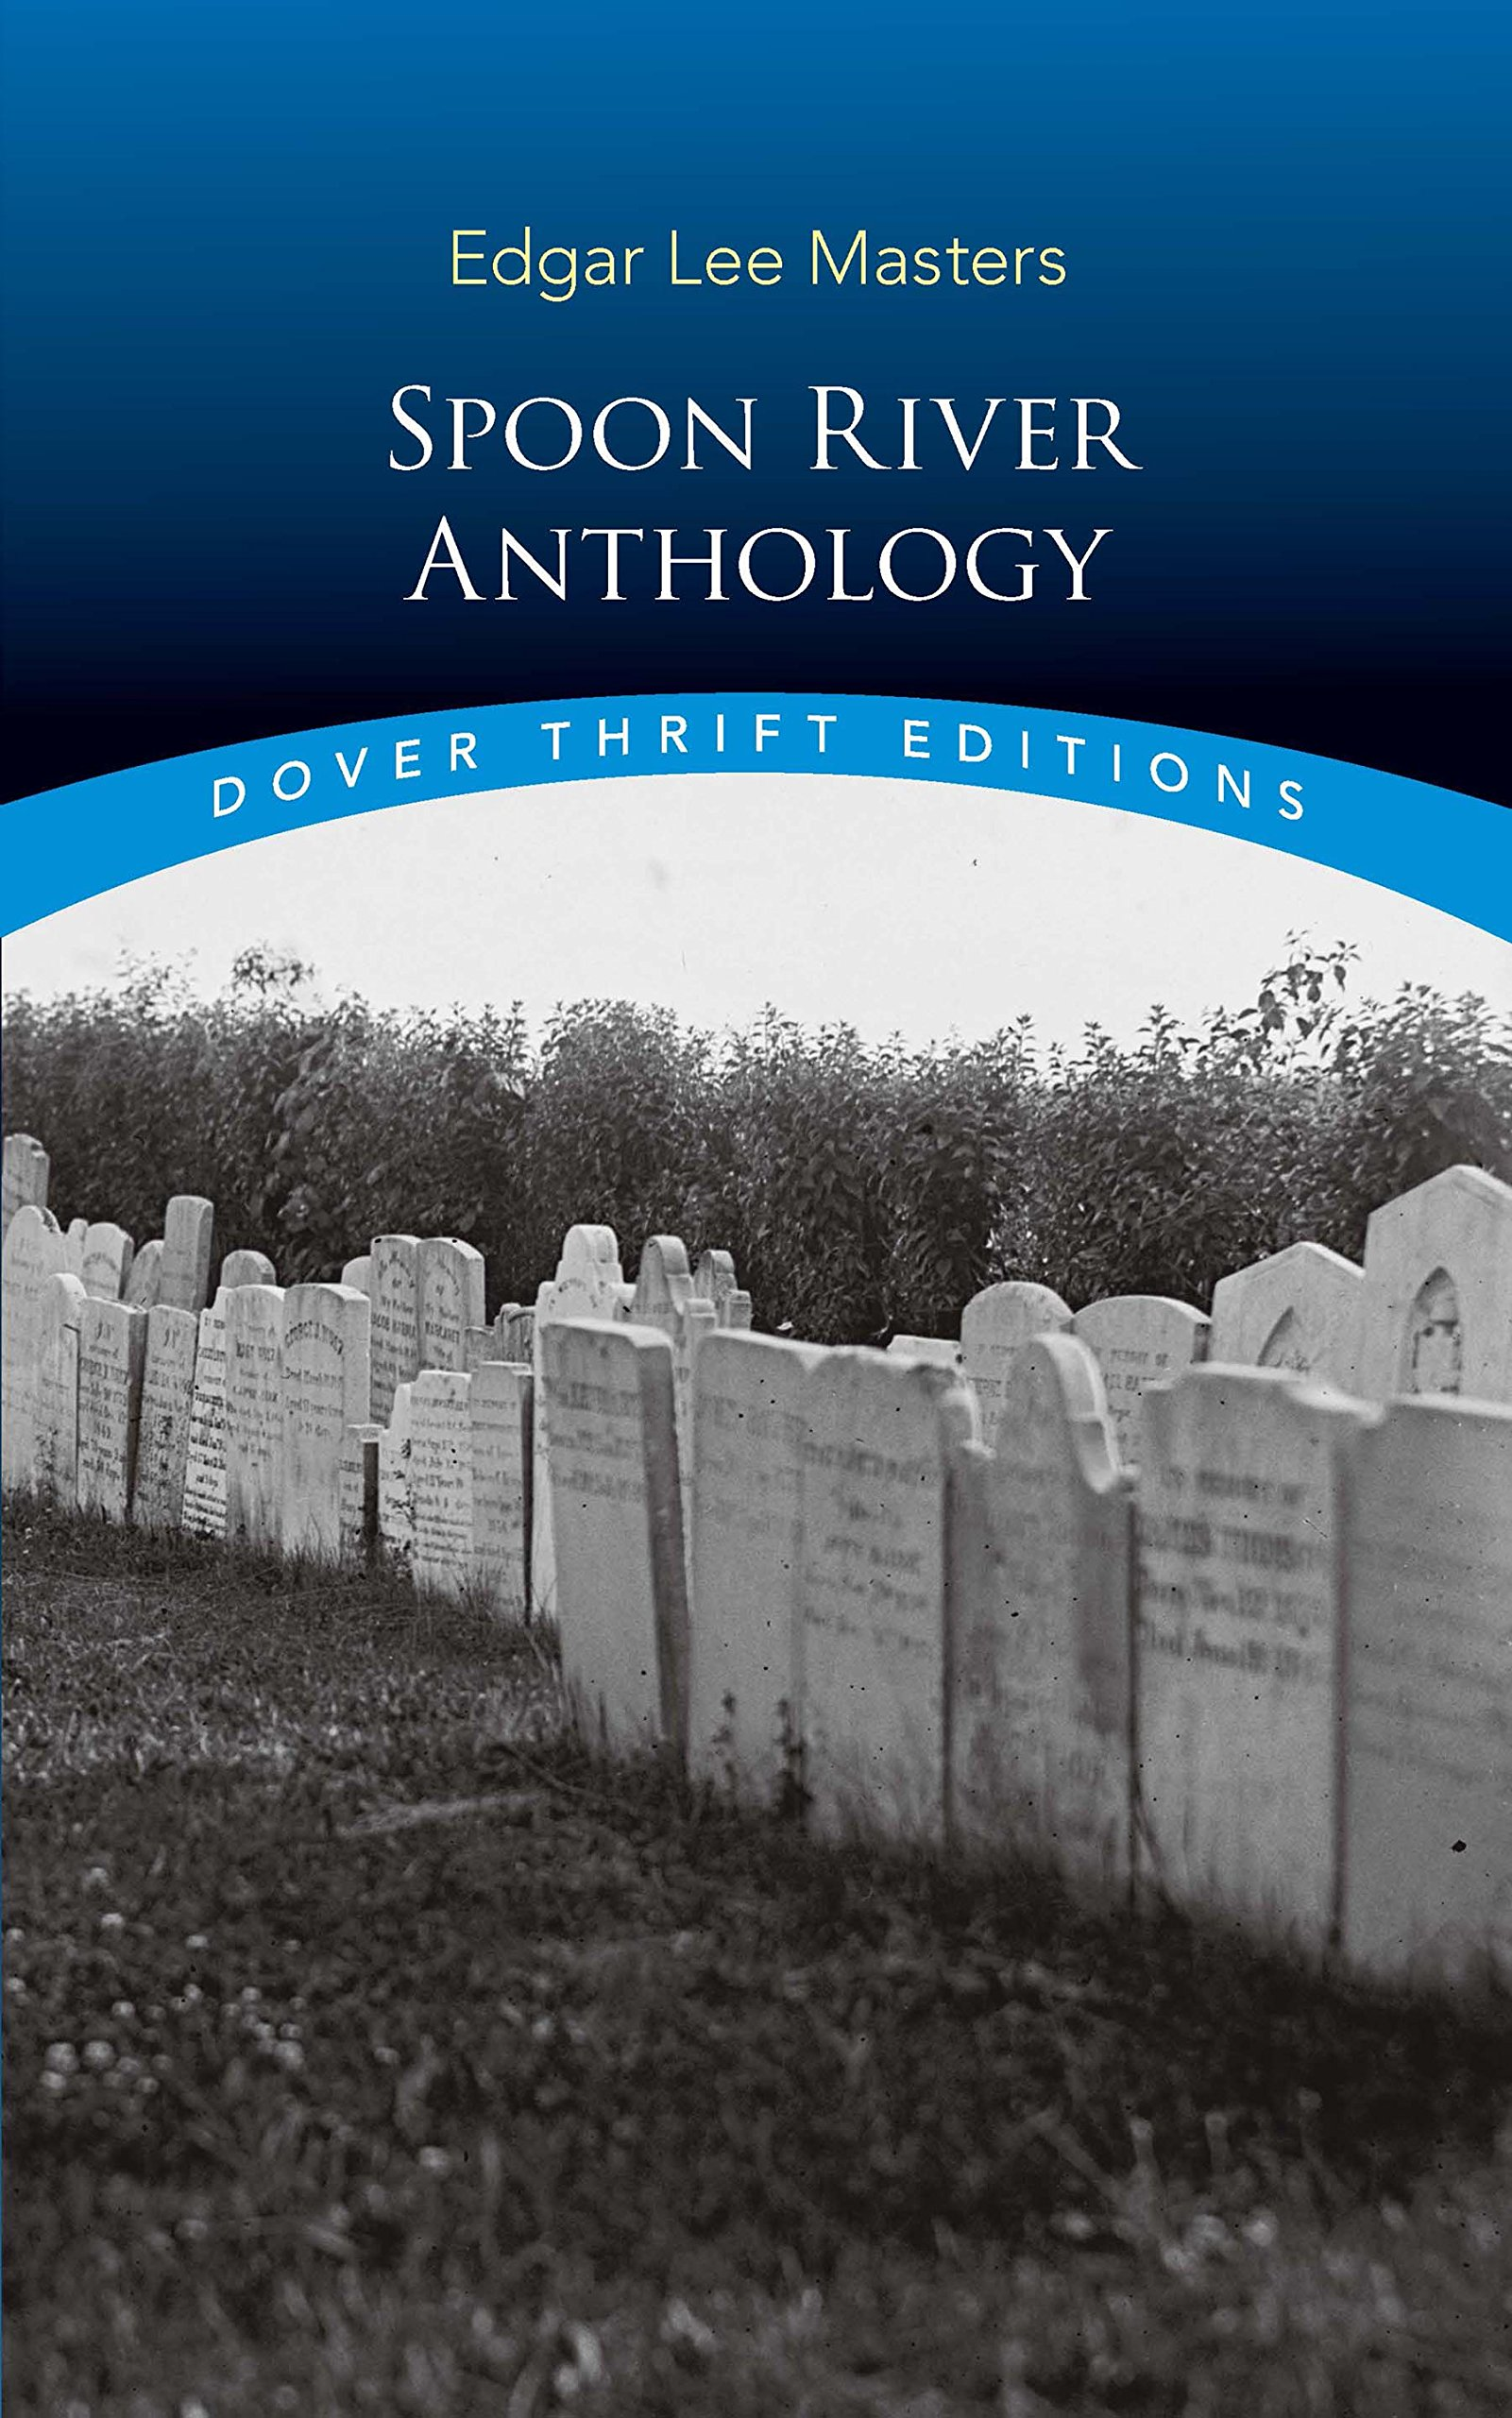 Spoon River Anthology (Dover Thrift Editions): Amazon.es: Edgar Lee Masters: Libros en idiomas extranjeros